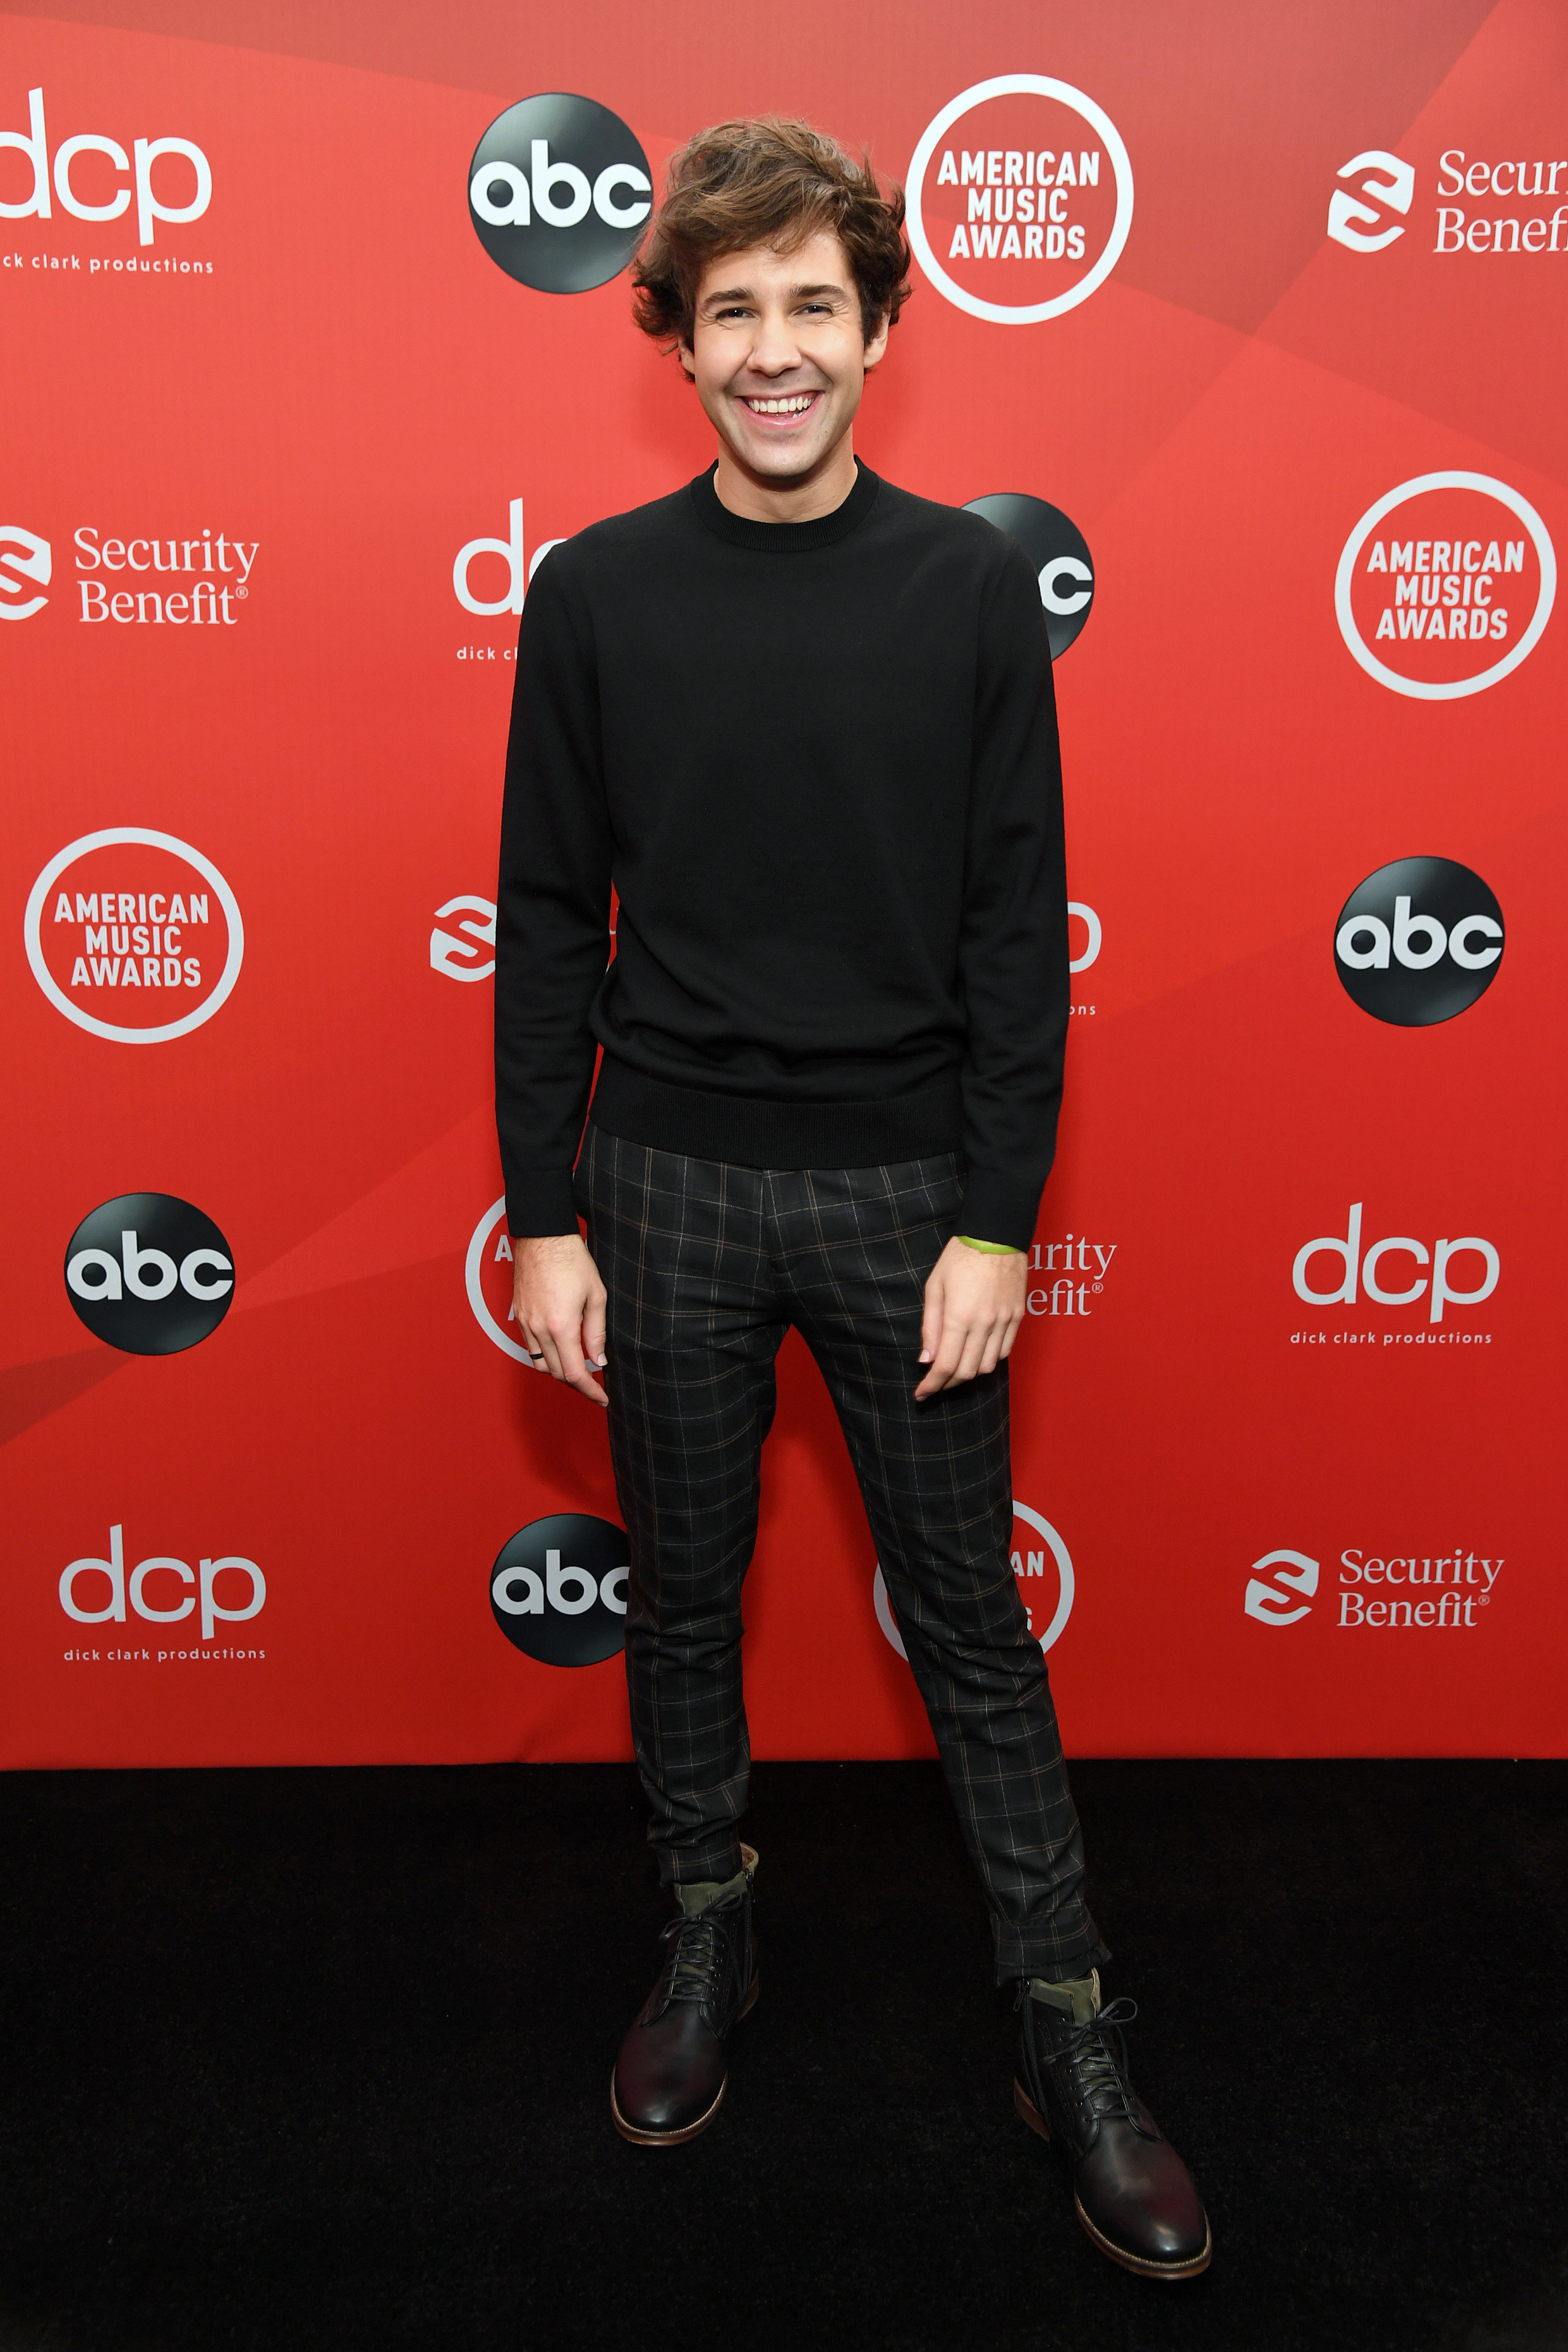 David Dobrik attends the 2020 American Music Awards